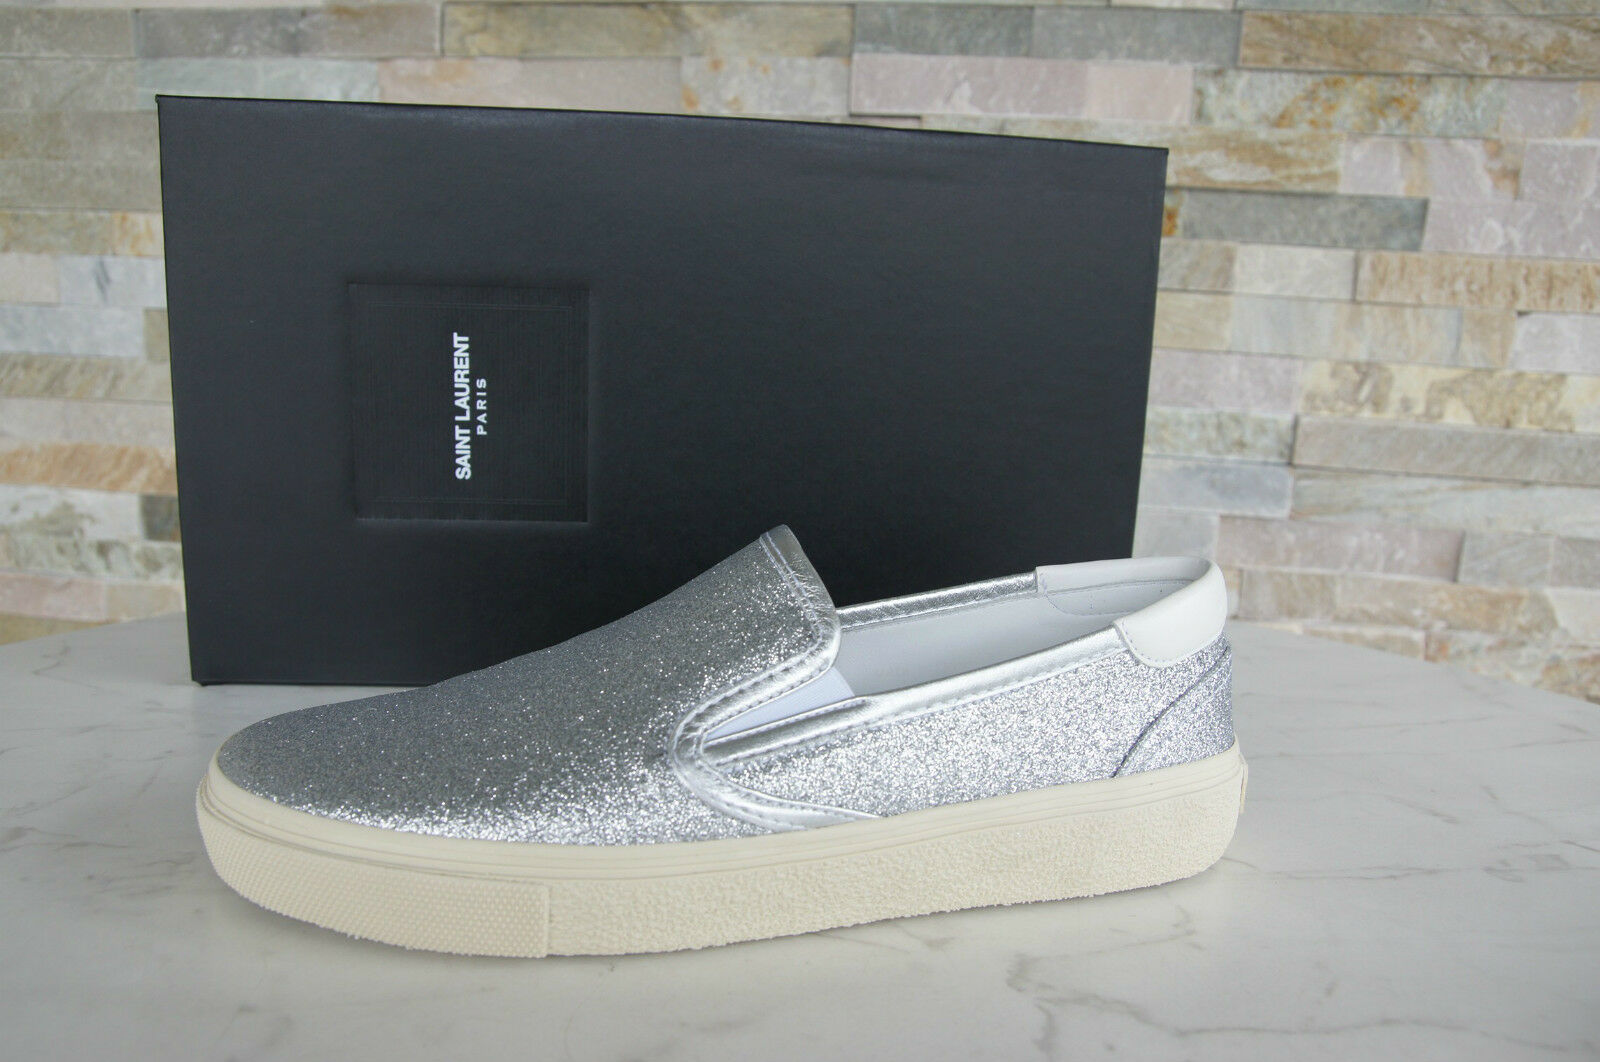 Saint LAURENT TAGLIA 40,5 6,5 Slipper Mocassini Slip UVP On Scarpe Shoes NUOVO UVP Slip 72a03a